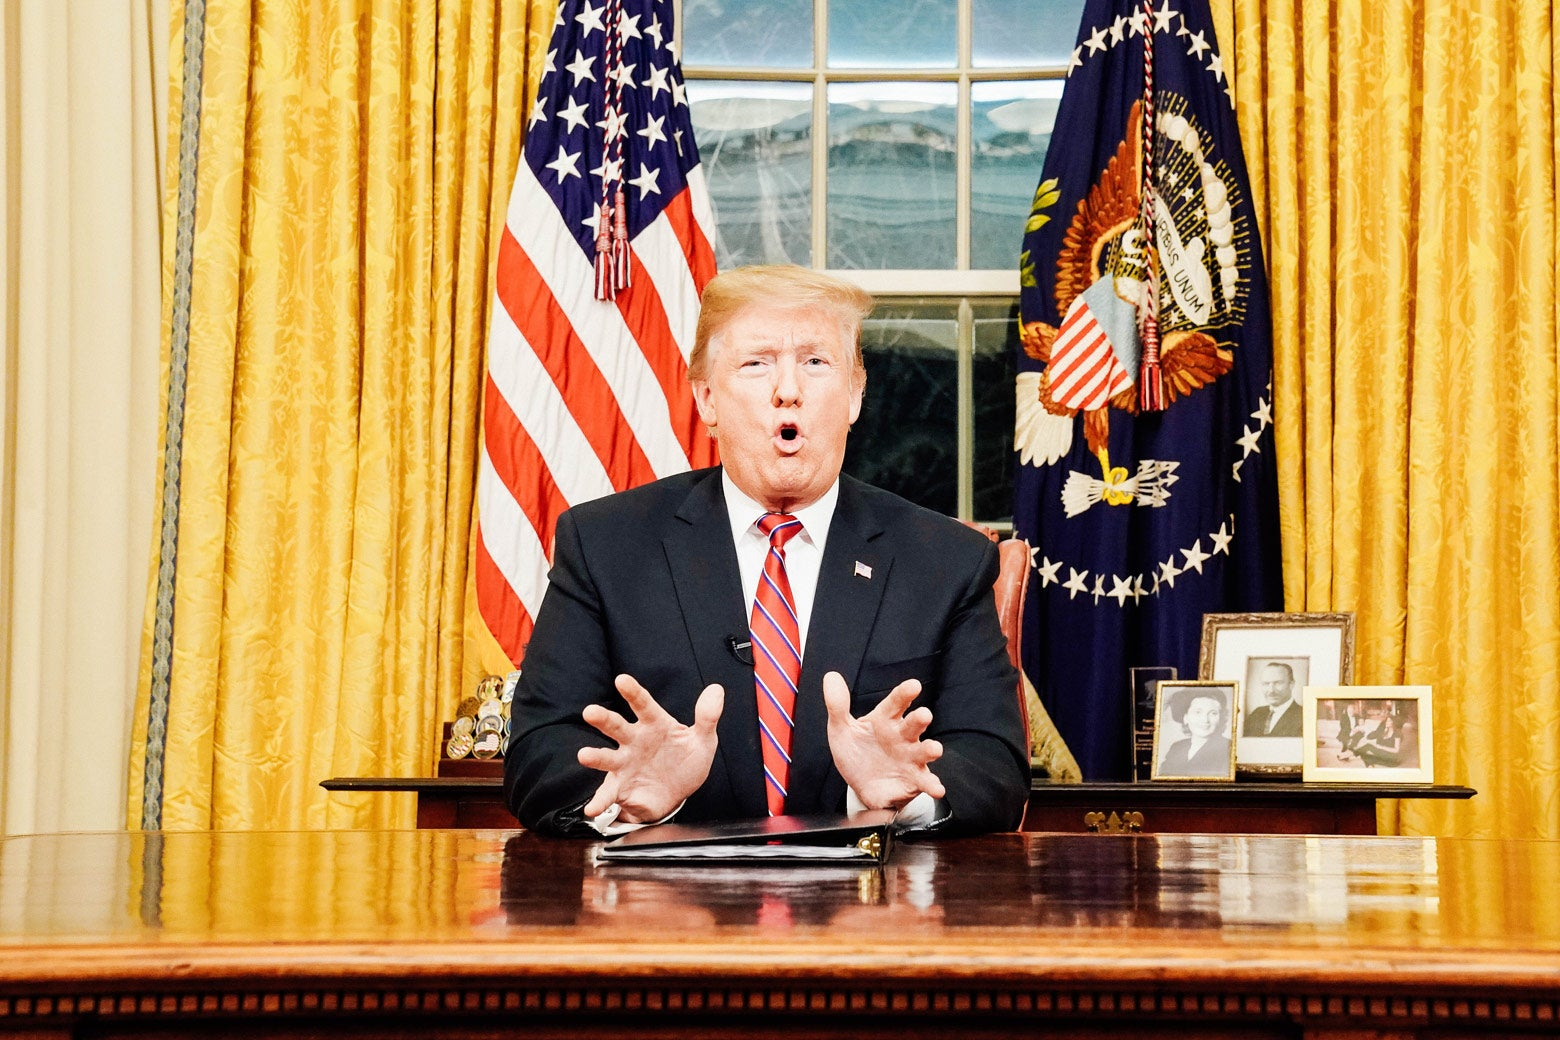 Donald Trump is captured mid-phrase, fingertips spread out and mouth open, during his prime-time address on Jan. 8.